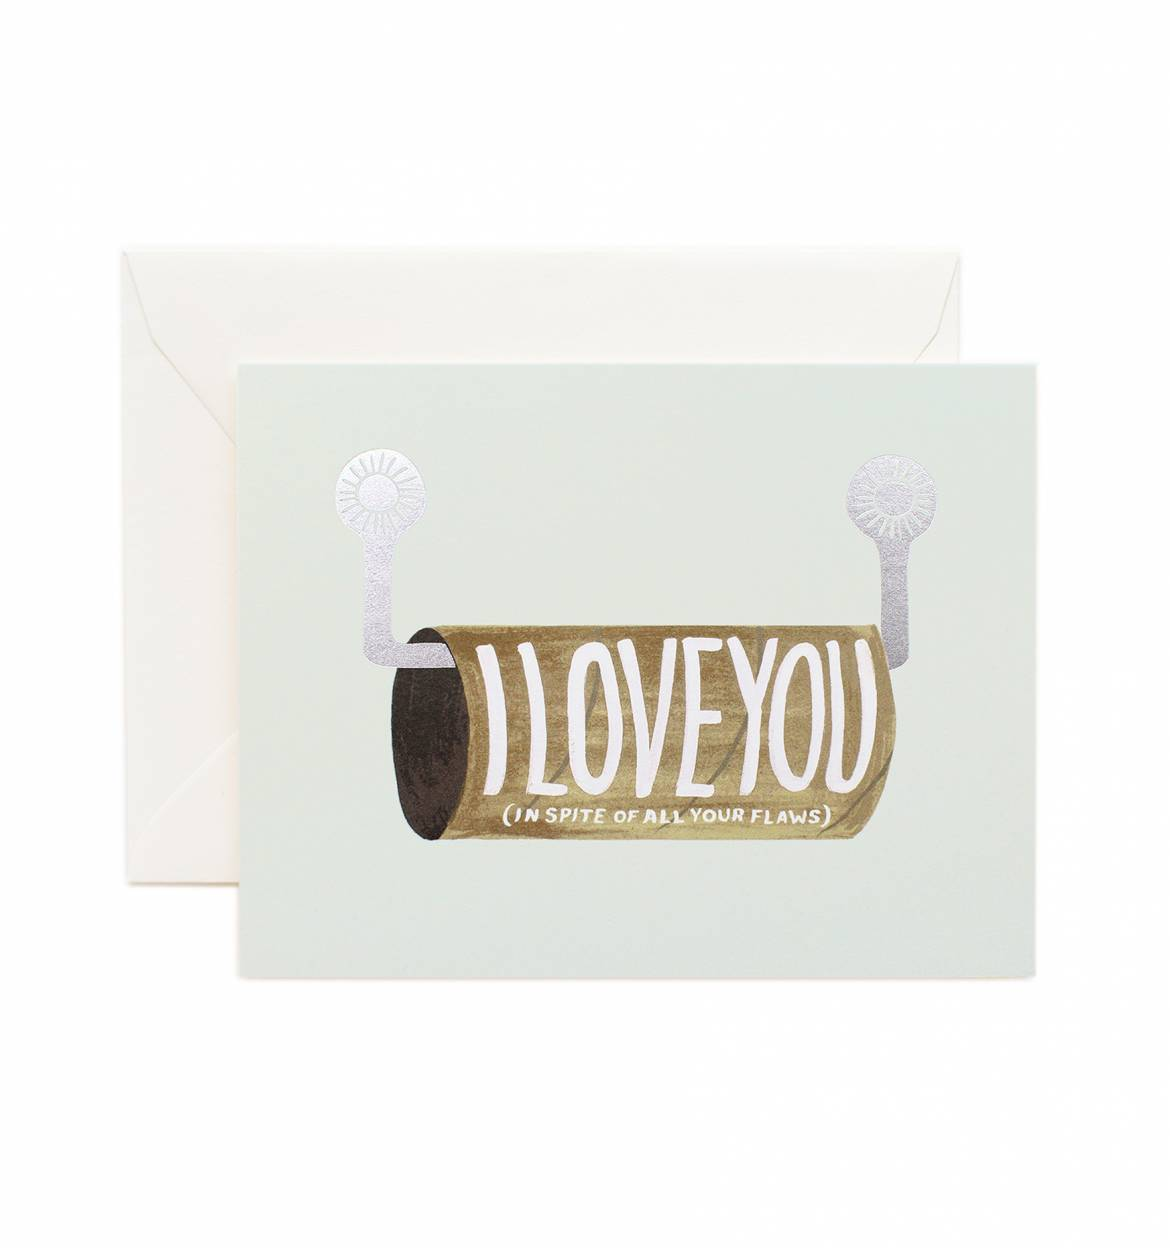 in-spite-of-your-flaws-greeting-card-single-01_1.jpg